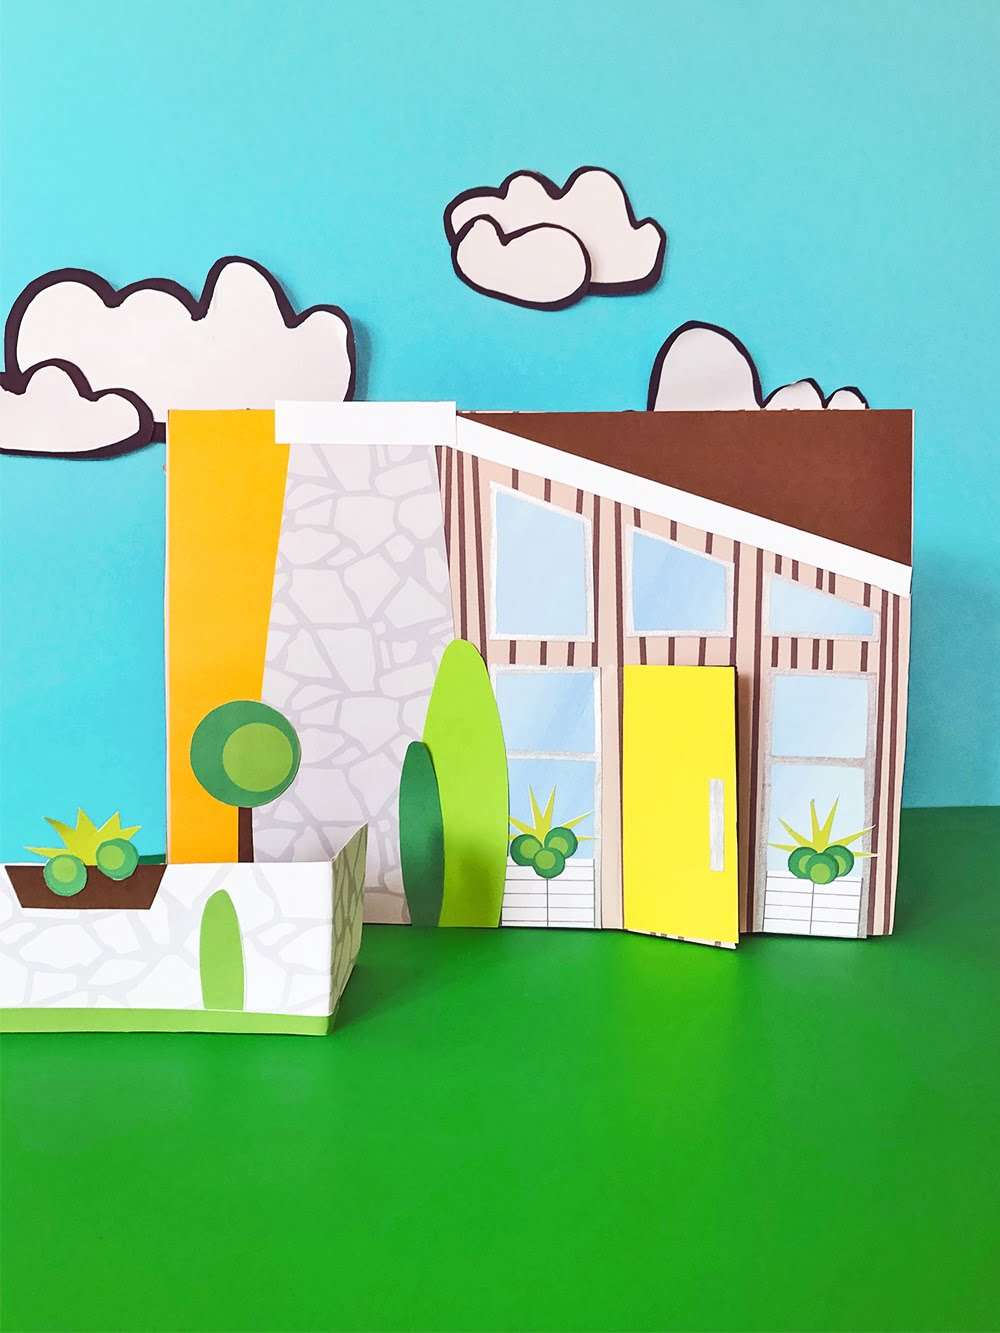 Create your own storybook mid-century modern DIY shoebox house using a cardboard box and collaging textures and simple shapes. A great rainy day activity for kids of any age!